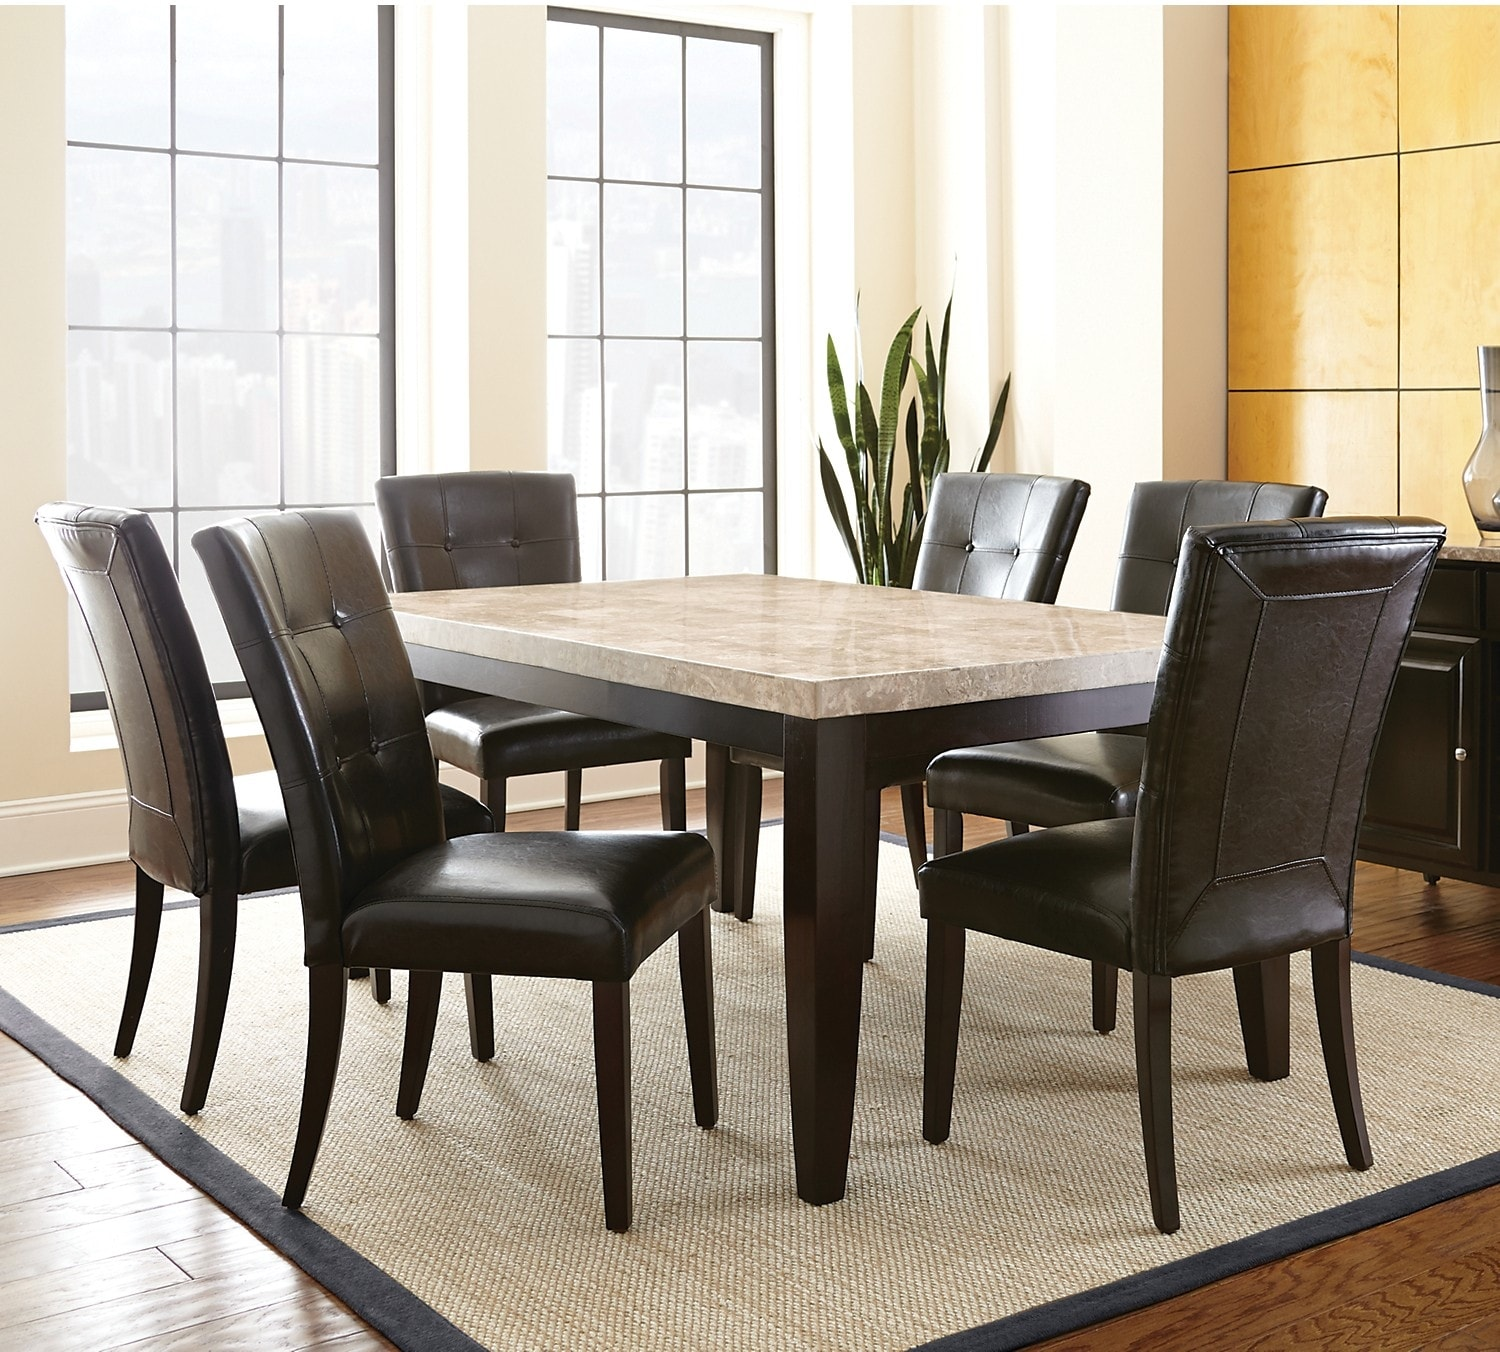 Dining Room Furniture - Dursley 5-Piece Dining Package